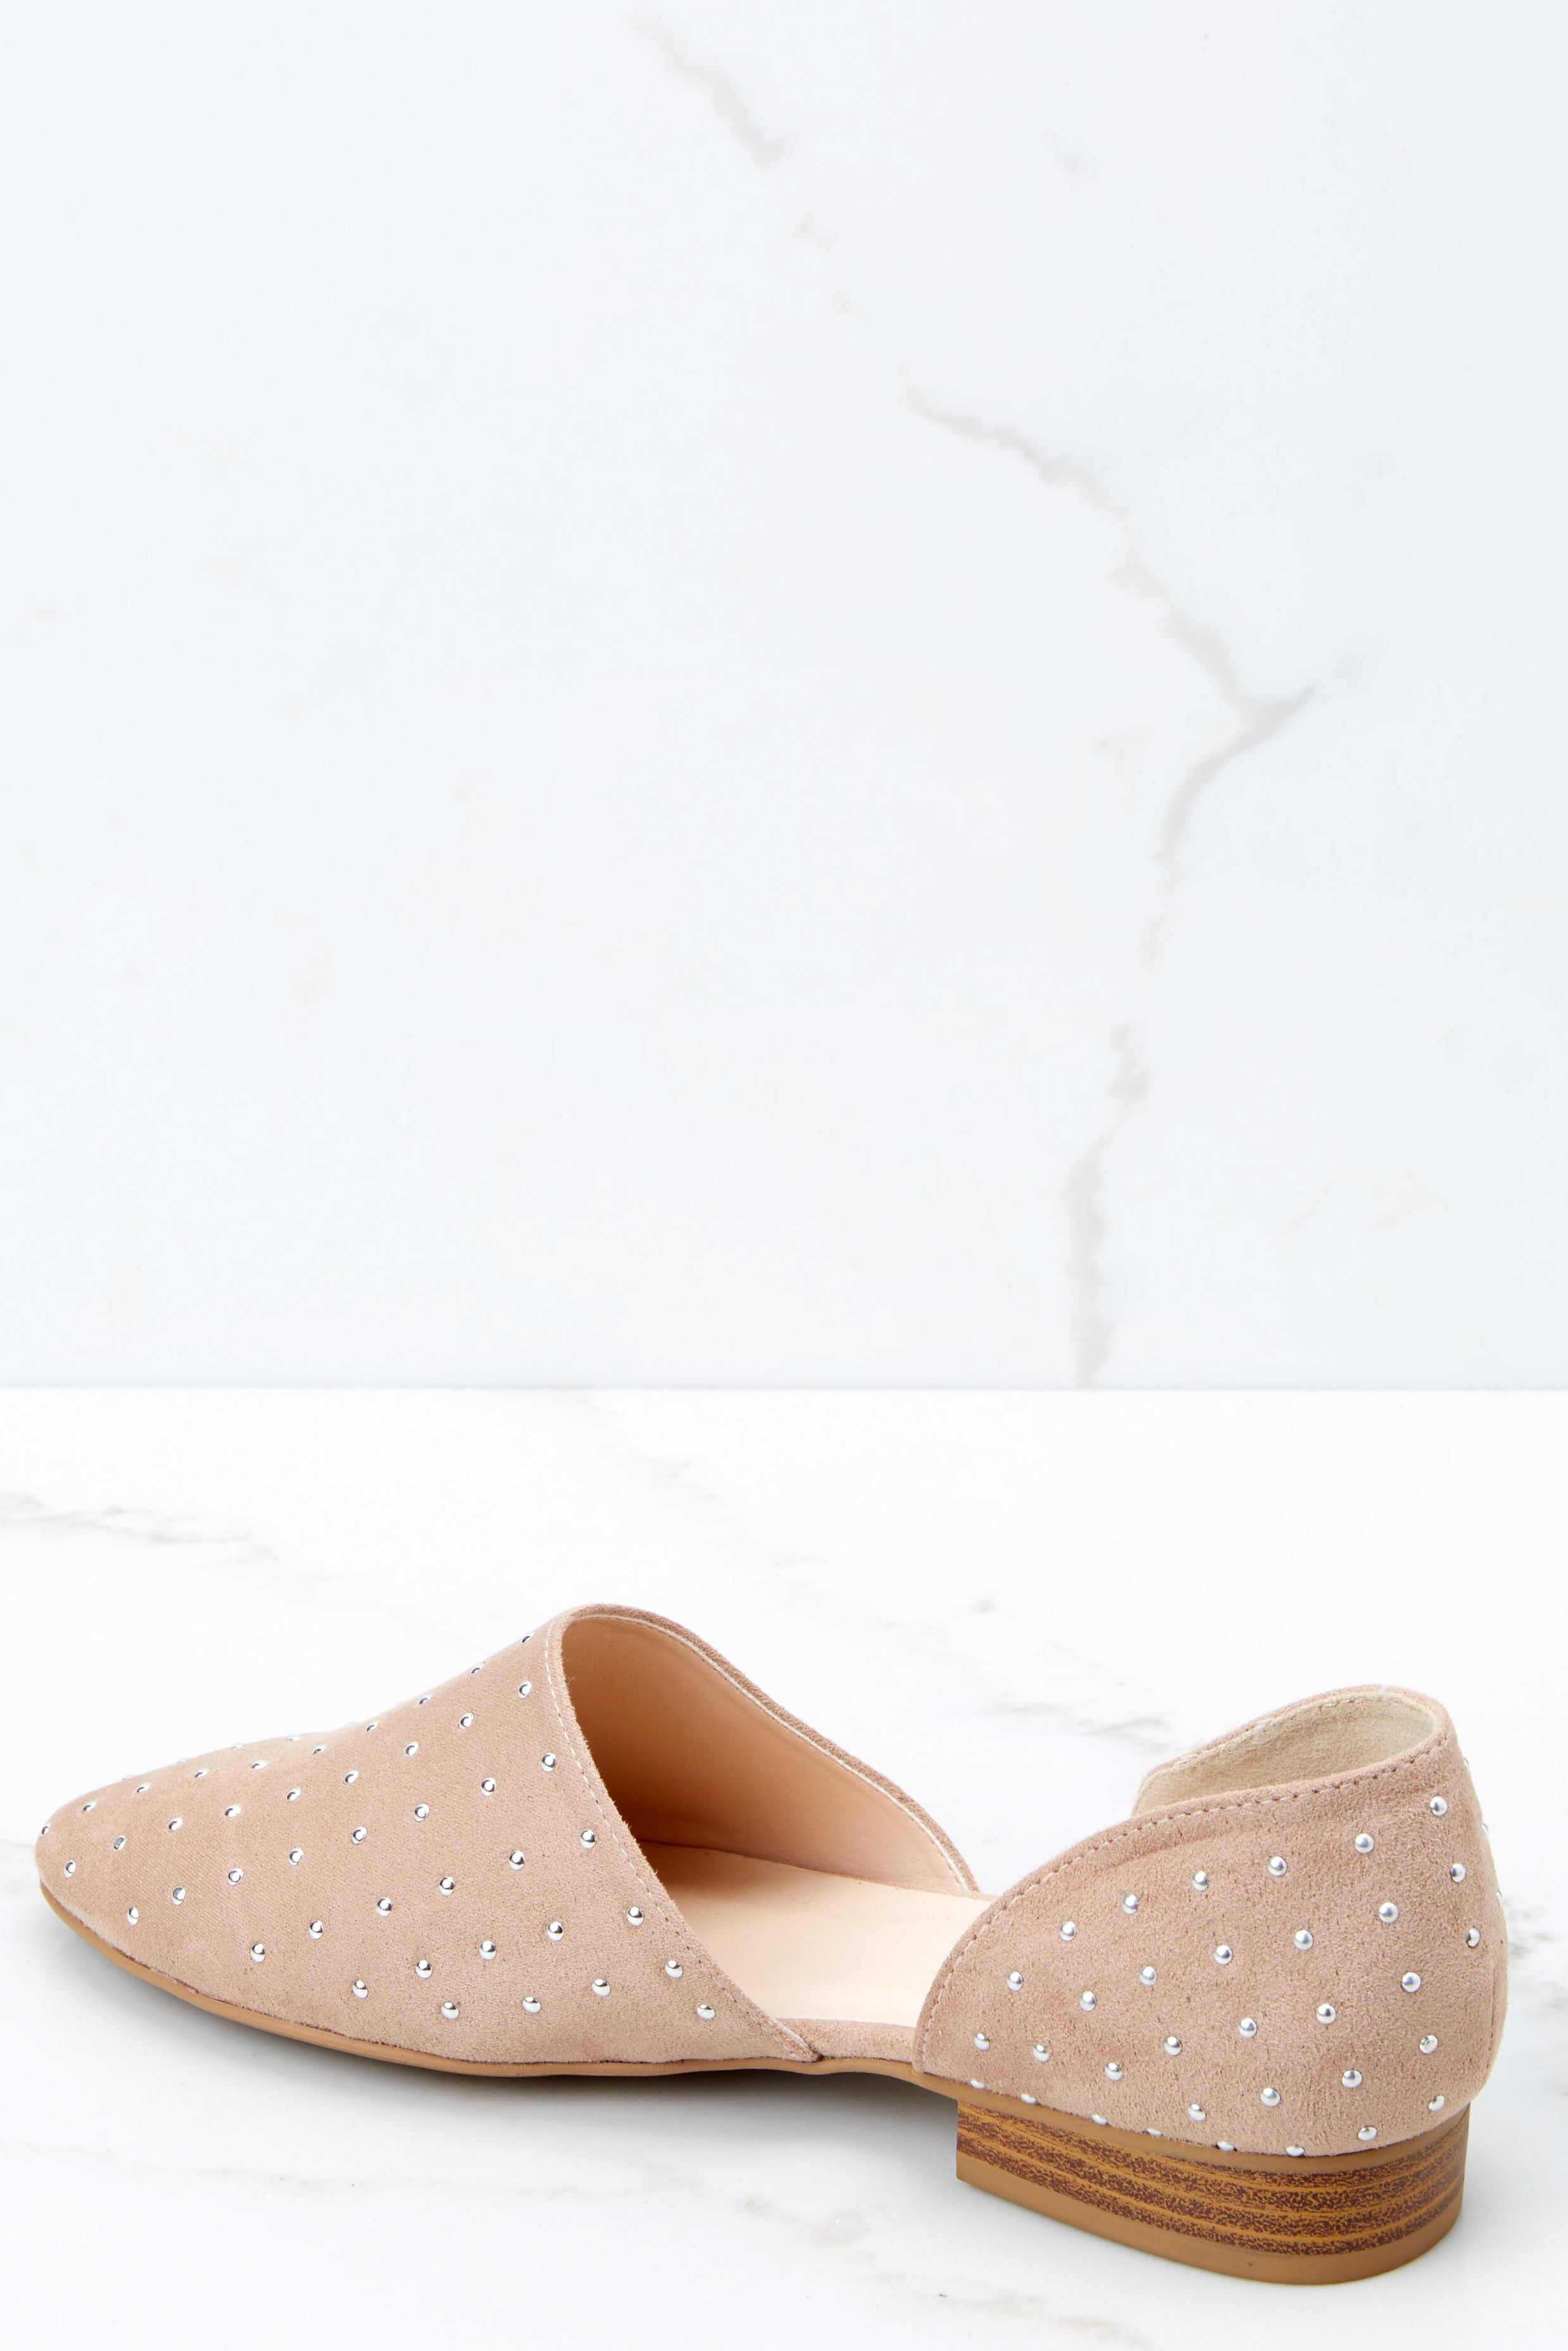 3 Star Studded Show Taupe Flats at reddressboutique.com